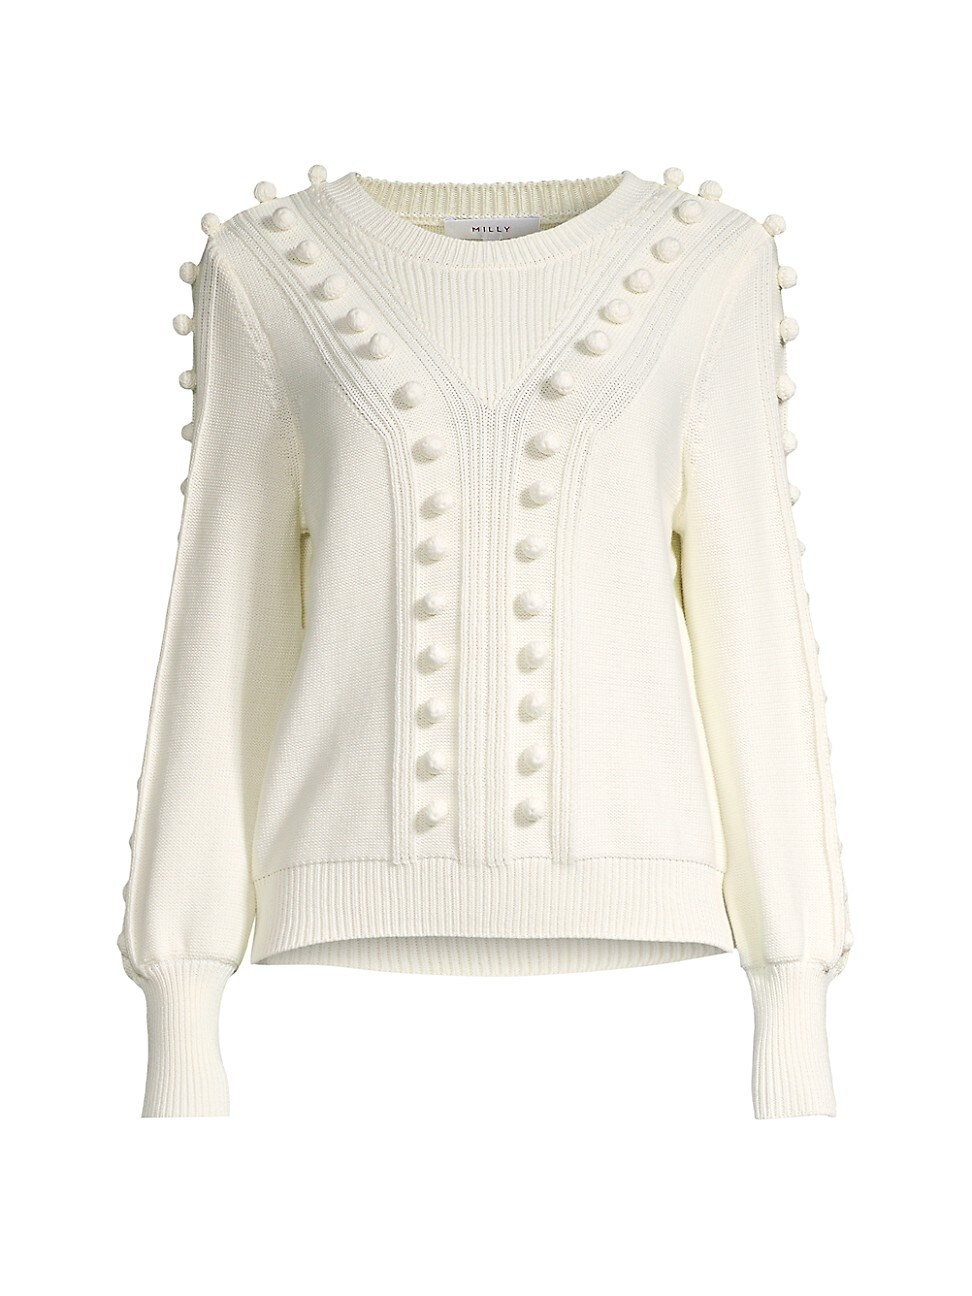 Milly WOMEN'S PLACED BOBBLE SWEATER